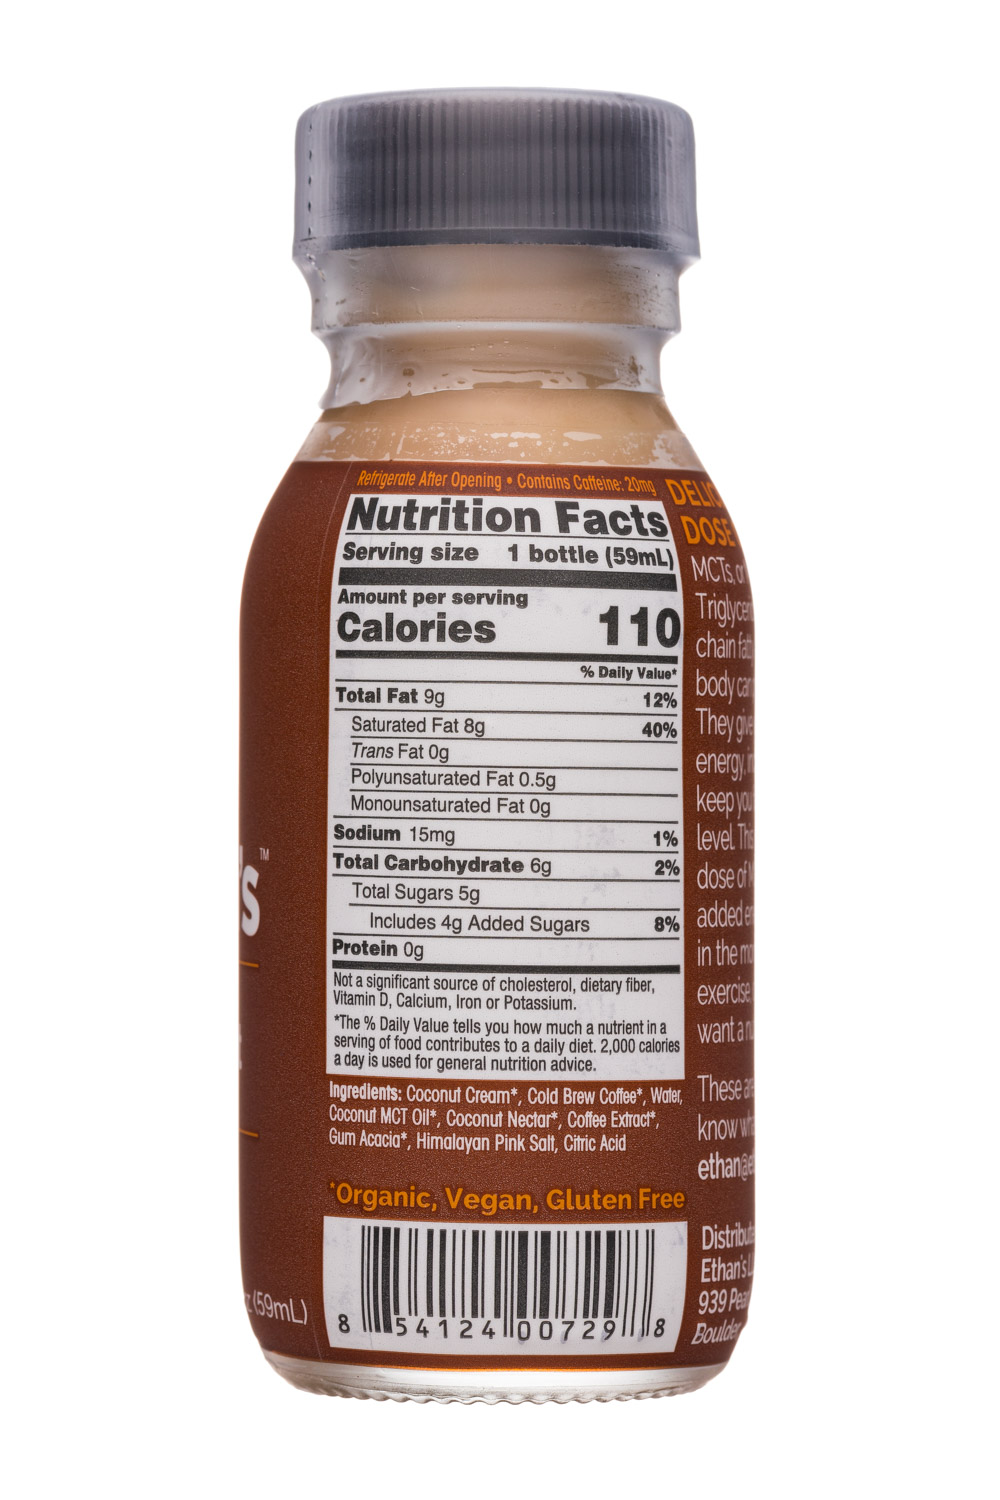 Ethan's MCT Shot: Ethans-2oz-MCTShot-Coffee-Facts